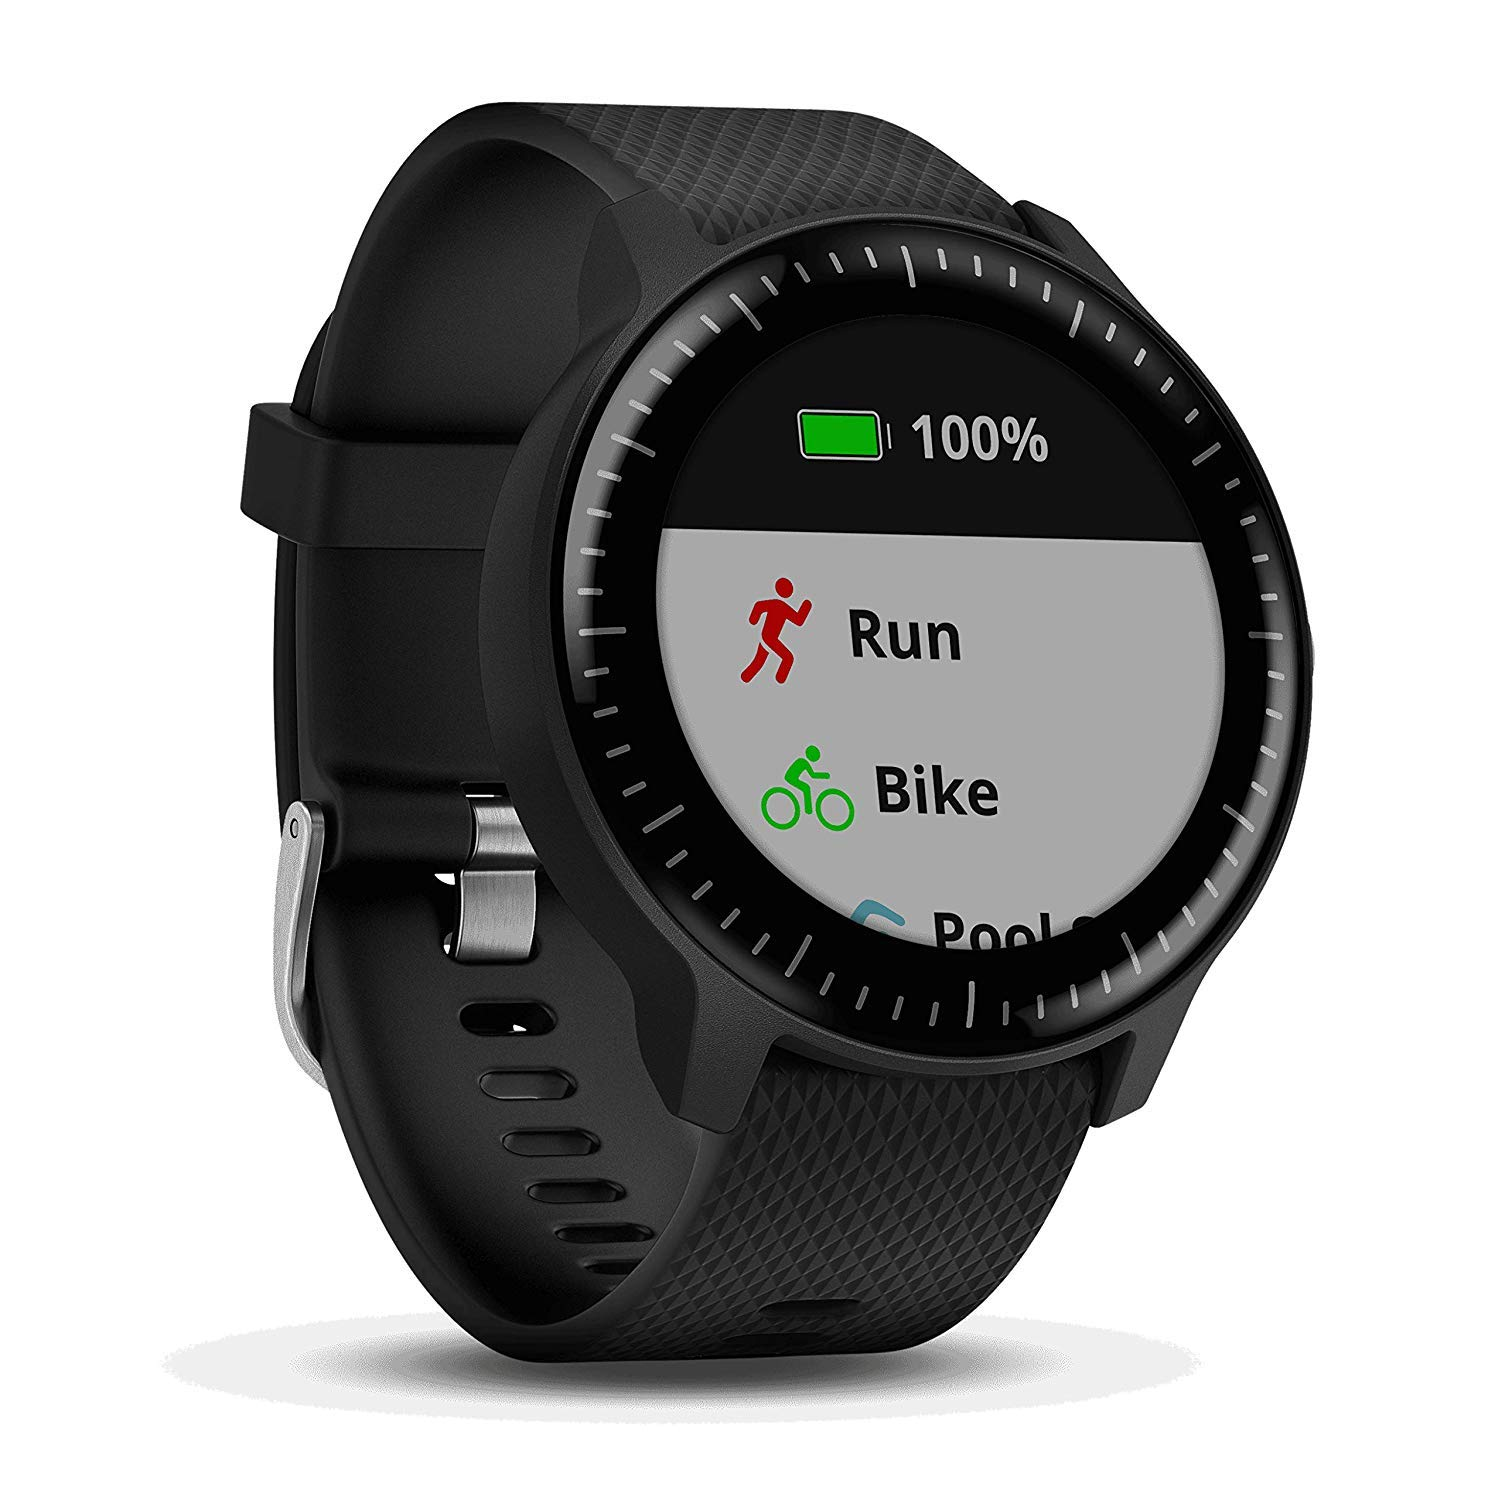 Beach Camera Garmin Vivoactive 3 Music GPS Smartwatch Black with Silver Hardware (010-01985-01) with 1 Year Extended Warranty